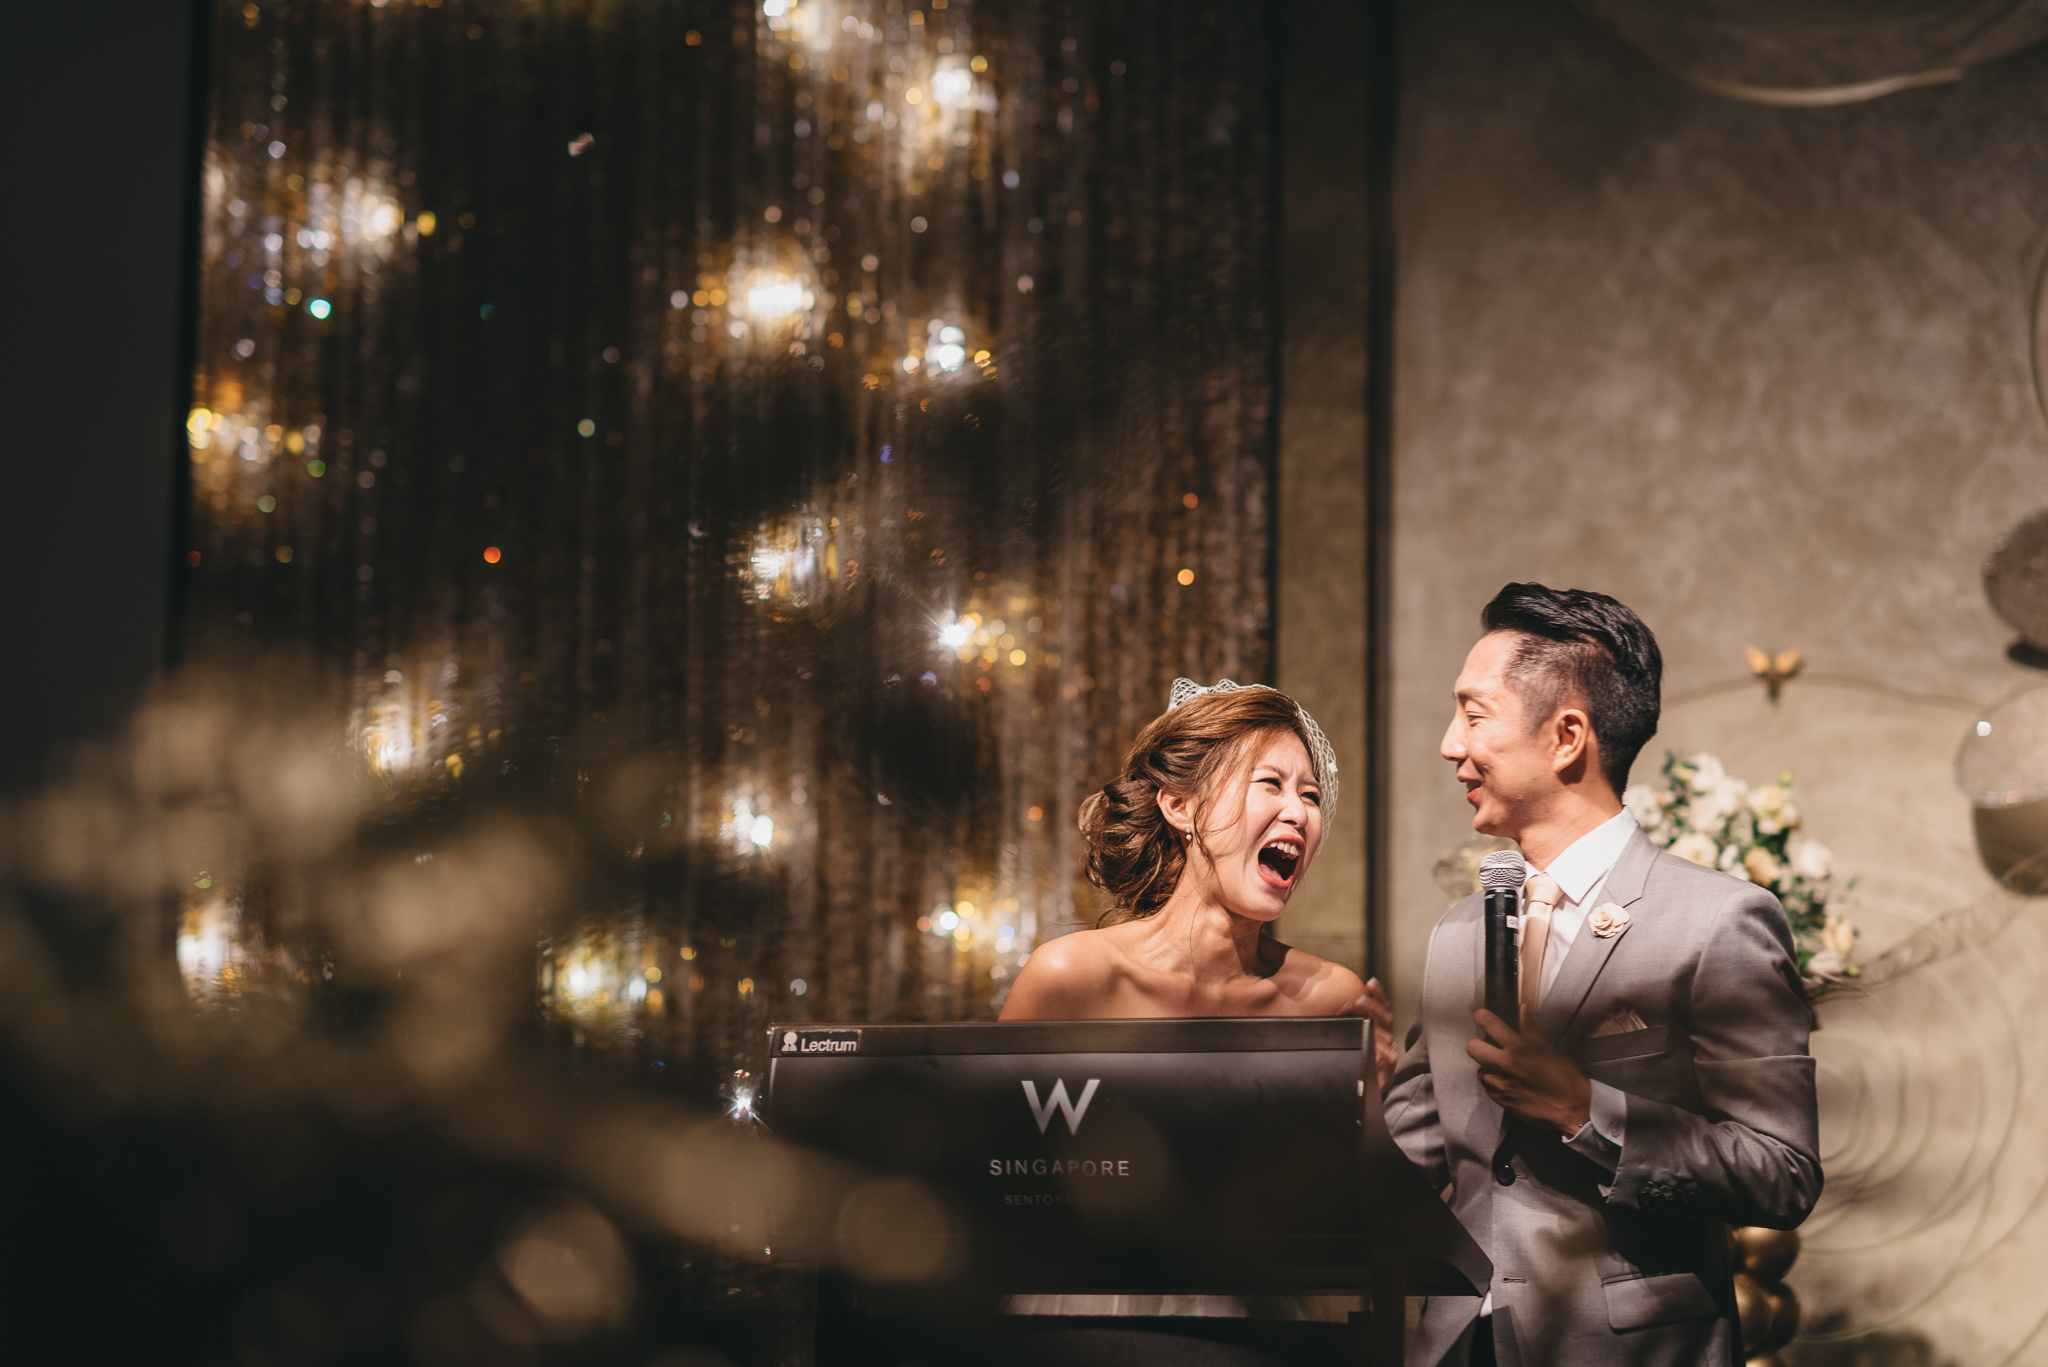 Justin & Winnie Wedding Day Highlights (resized for sharing) - 166.jpg